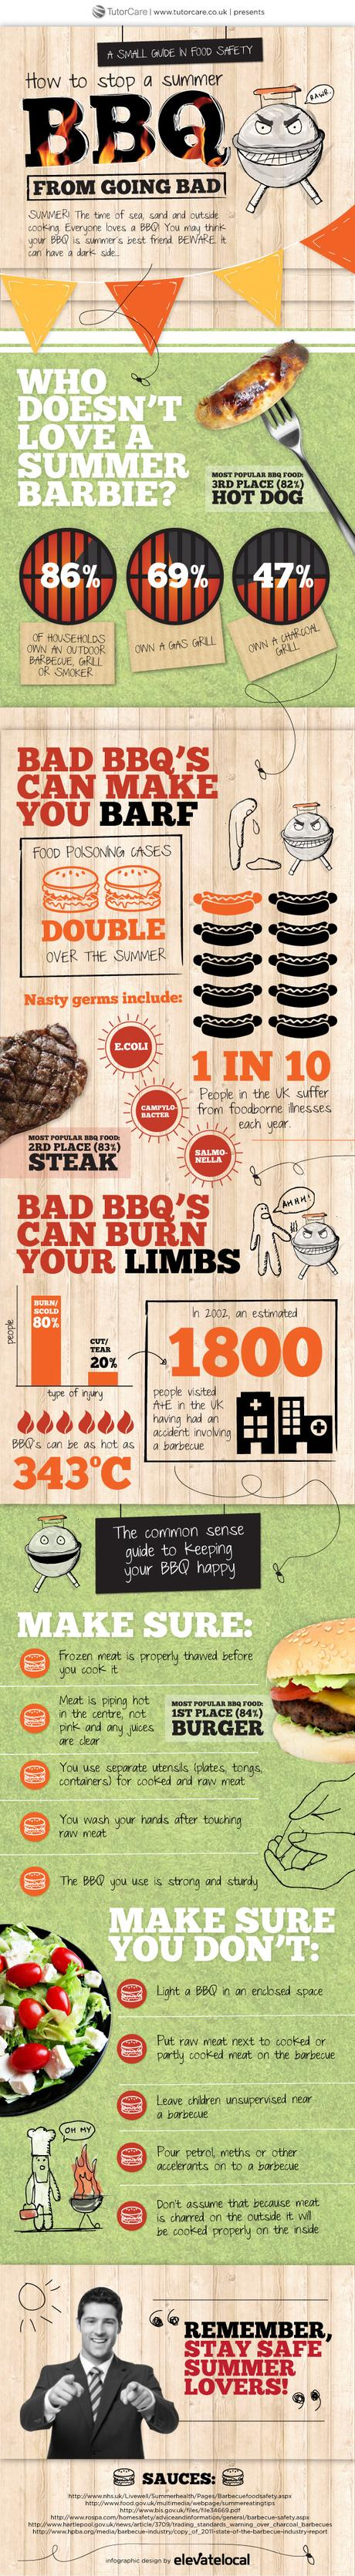 BBQ food safety infographic